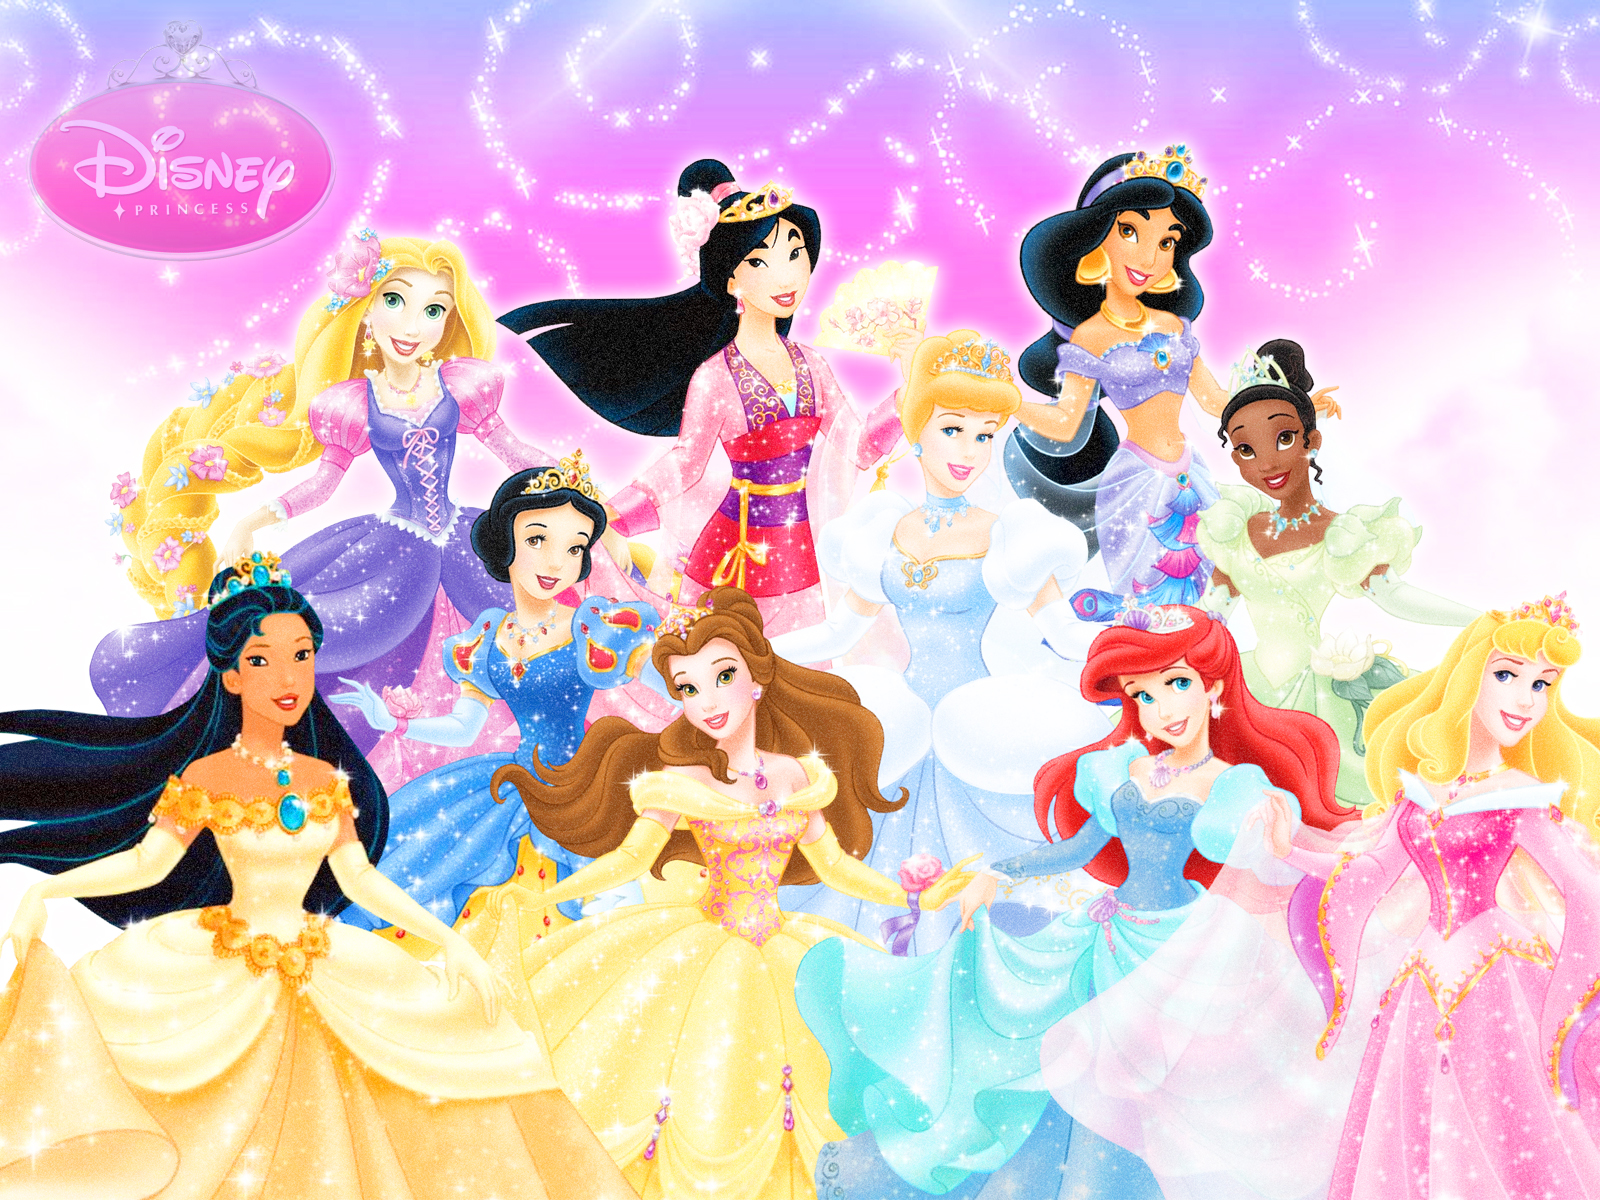 Disney Princess Names Picture Disney Princess Names Image Disney